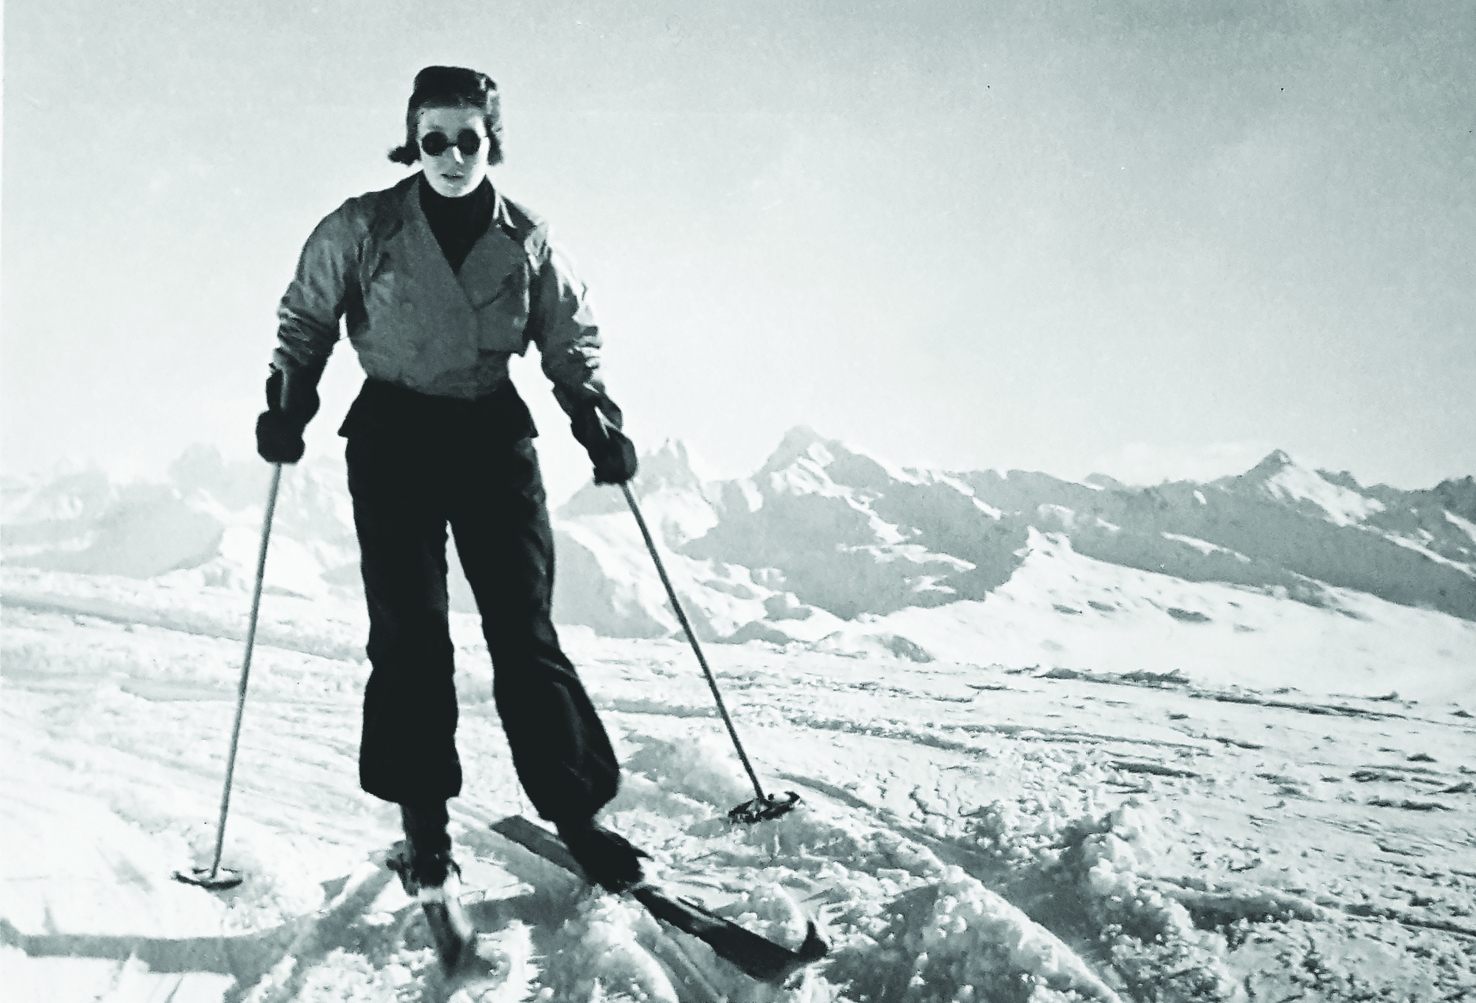 Mabey Ski_Granny Penny Skiing on a glacier aged 15 1938_Nickies Grandmother - Fathers Side.jpg